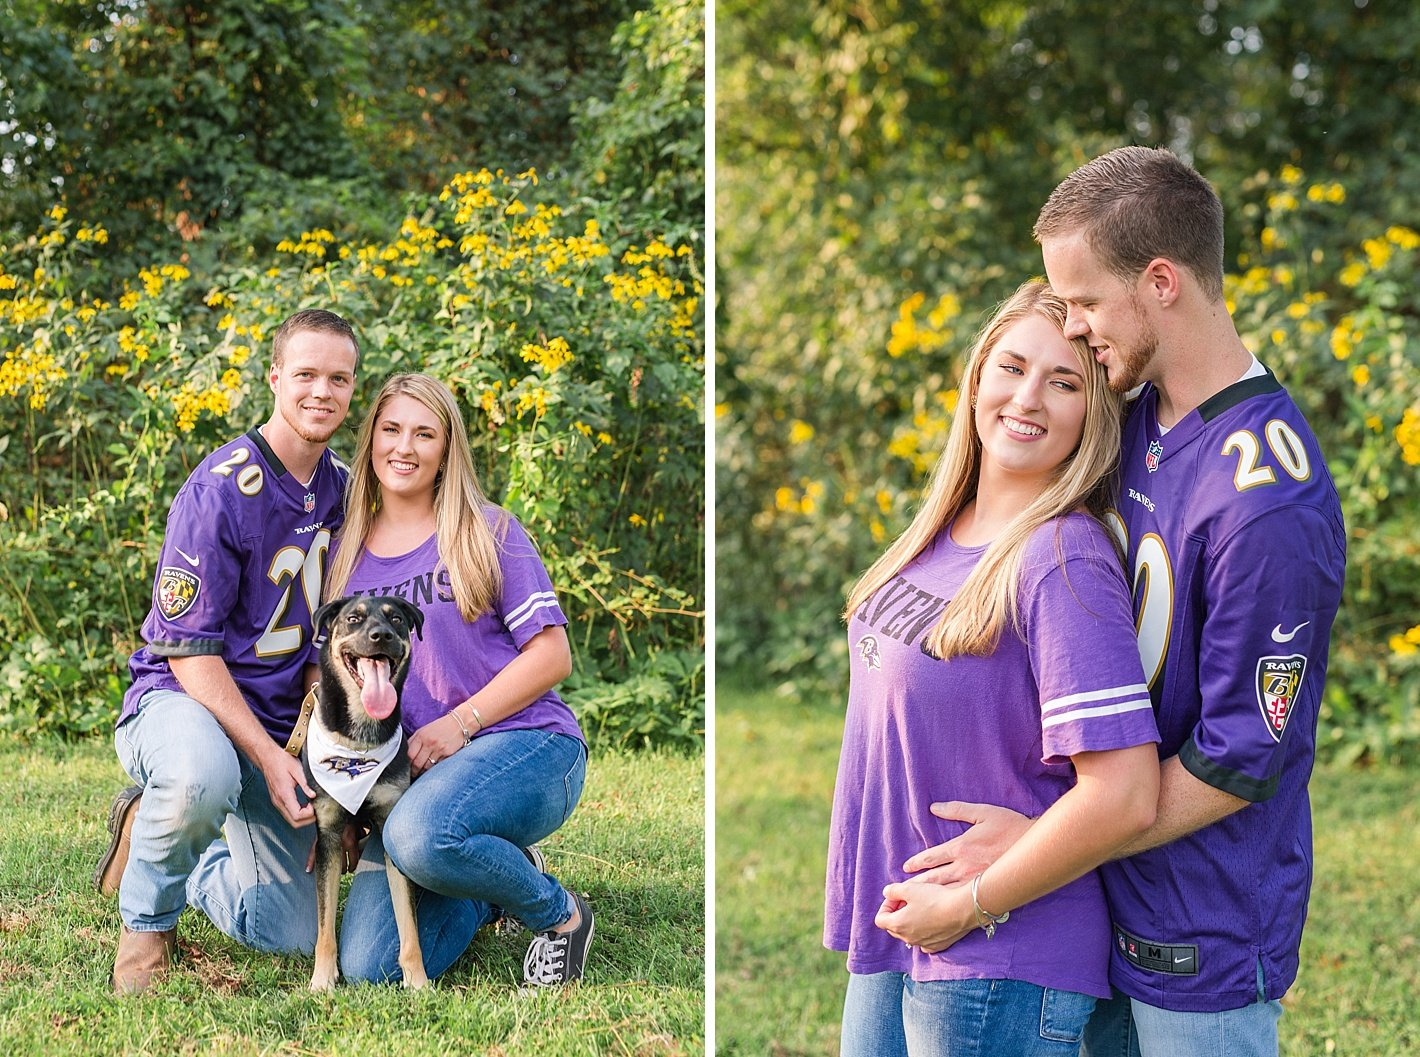 Ravens engagement photography, NCR trail engagement photography, Baltimore engagement photographer